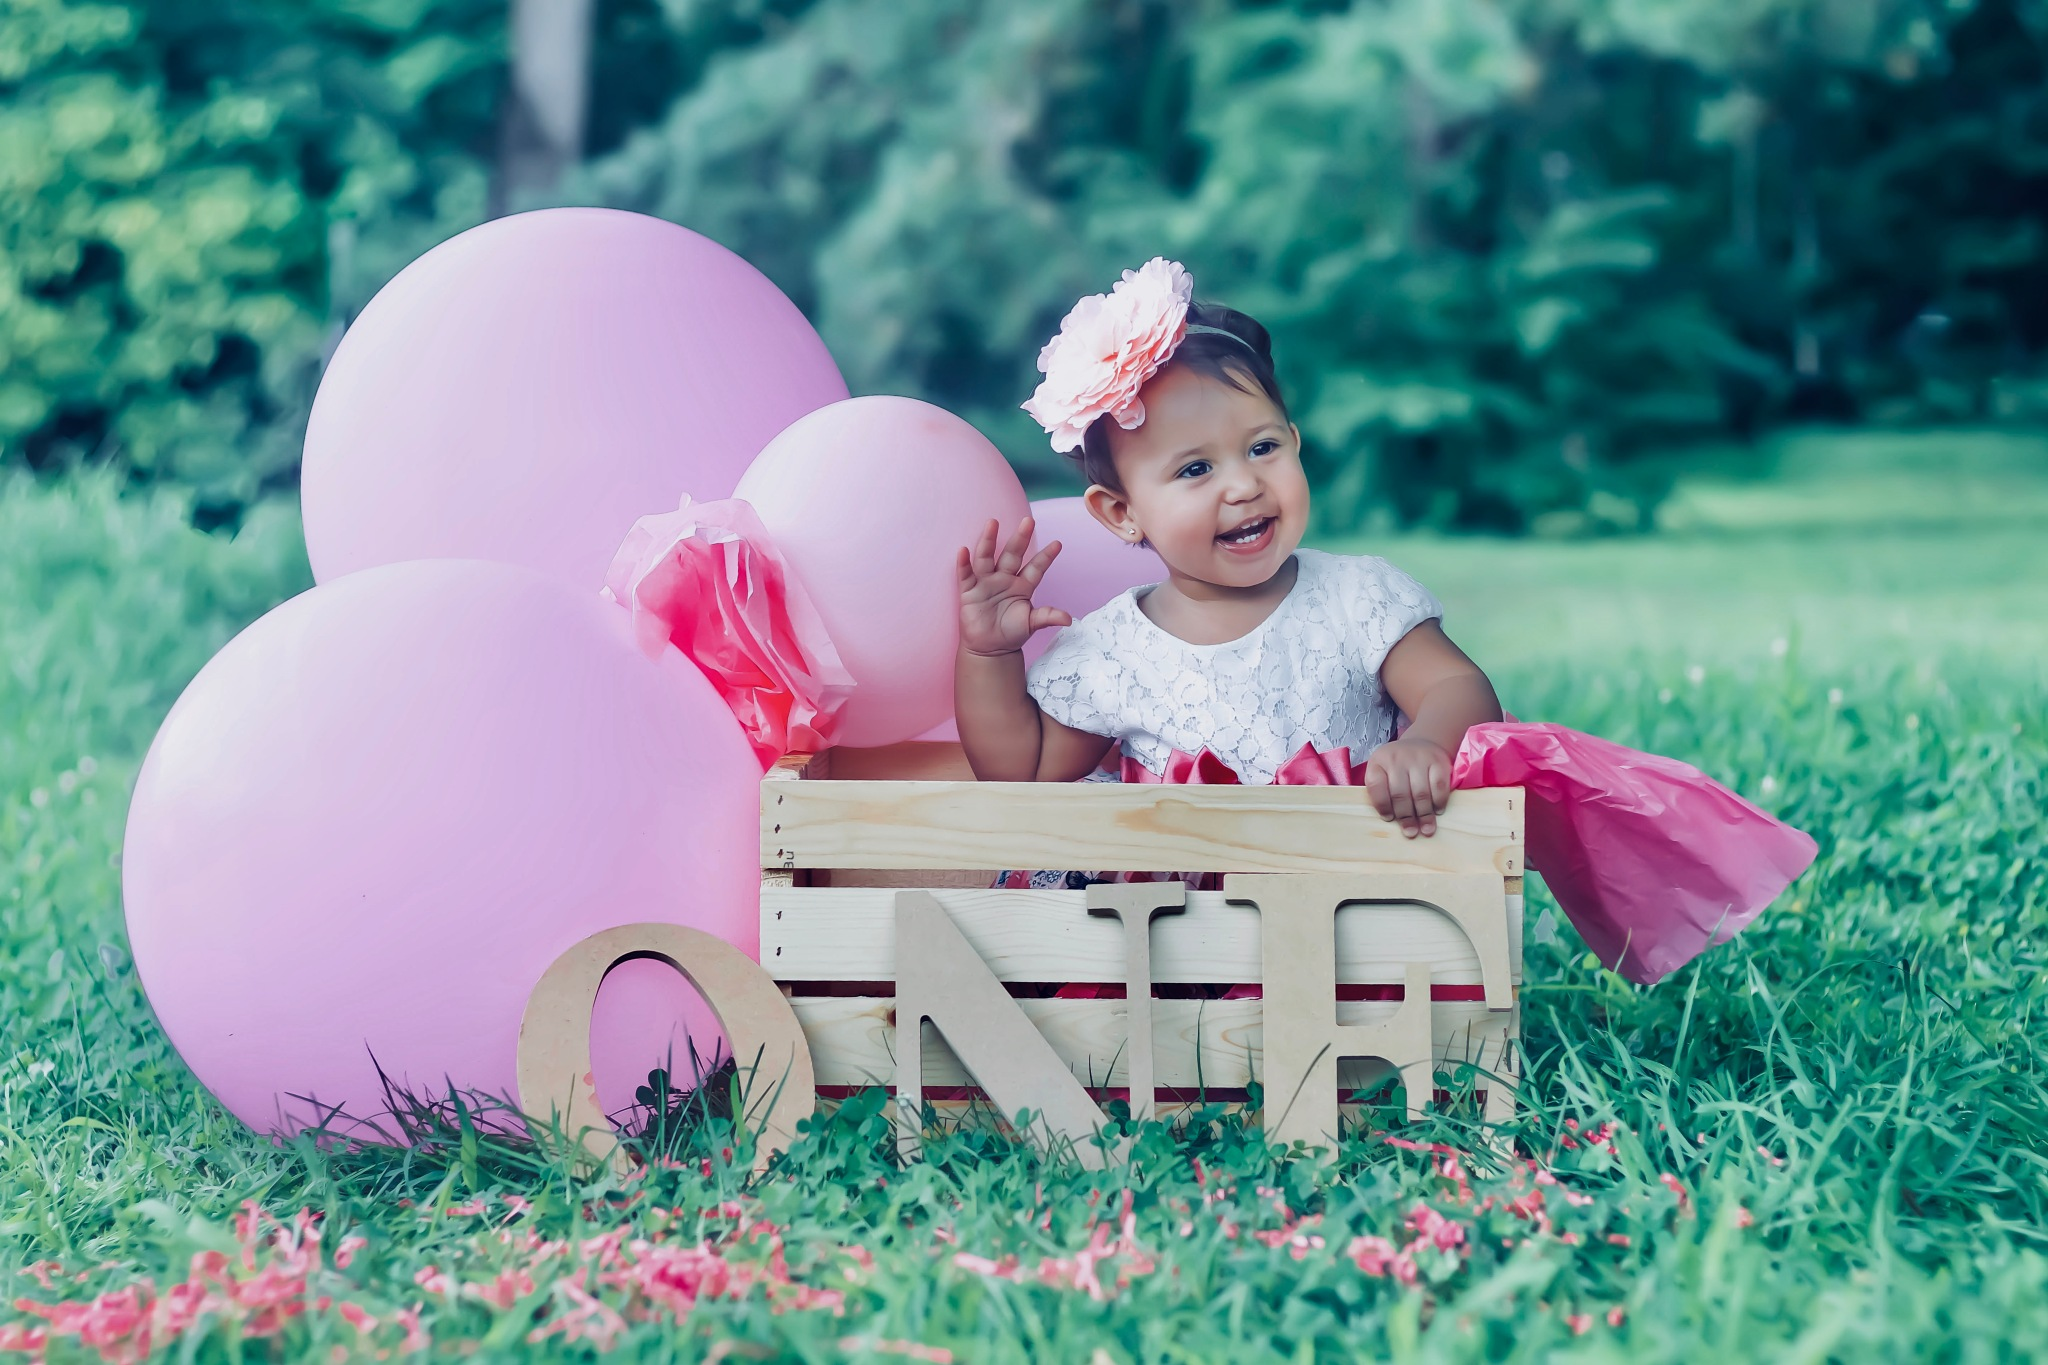 Turning ONE by Jan Perez Colon